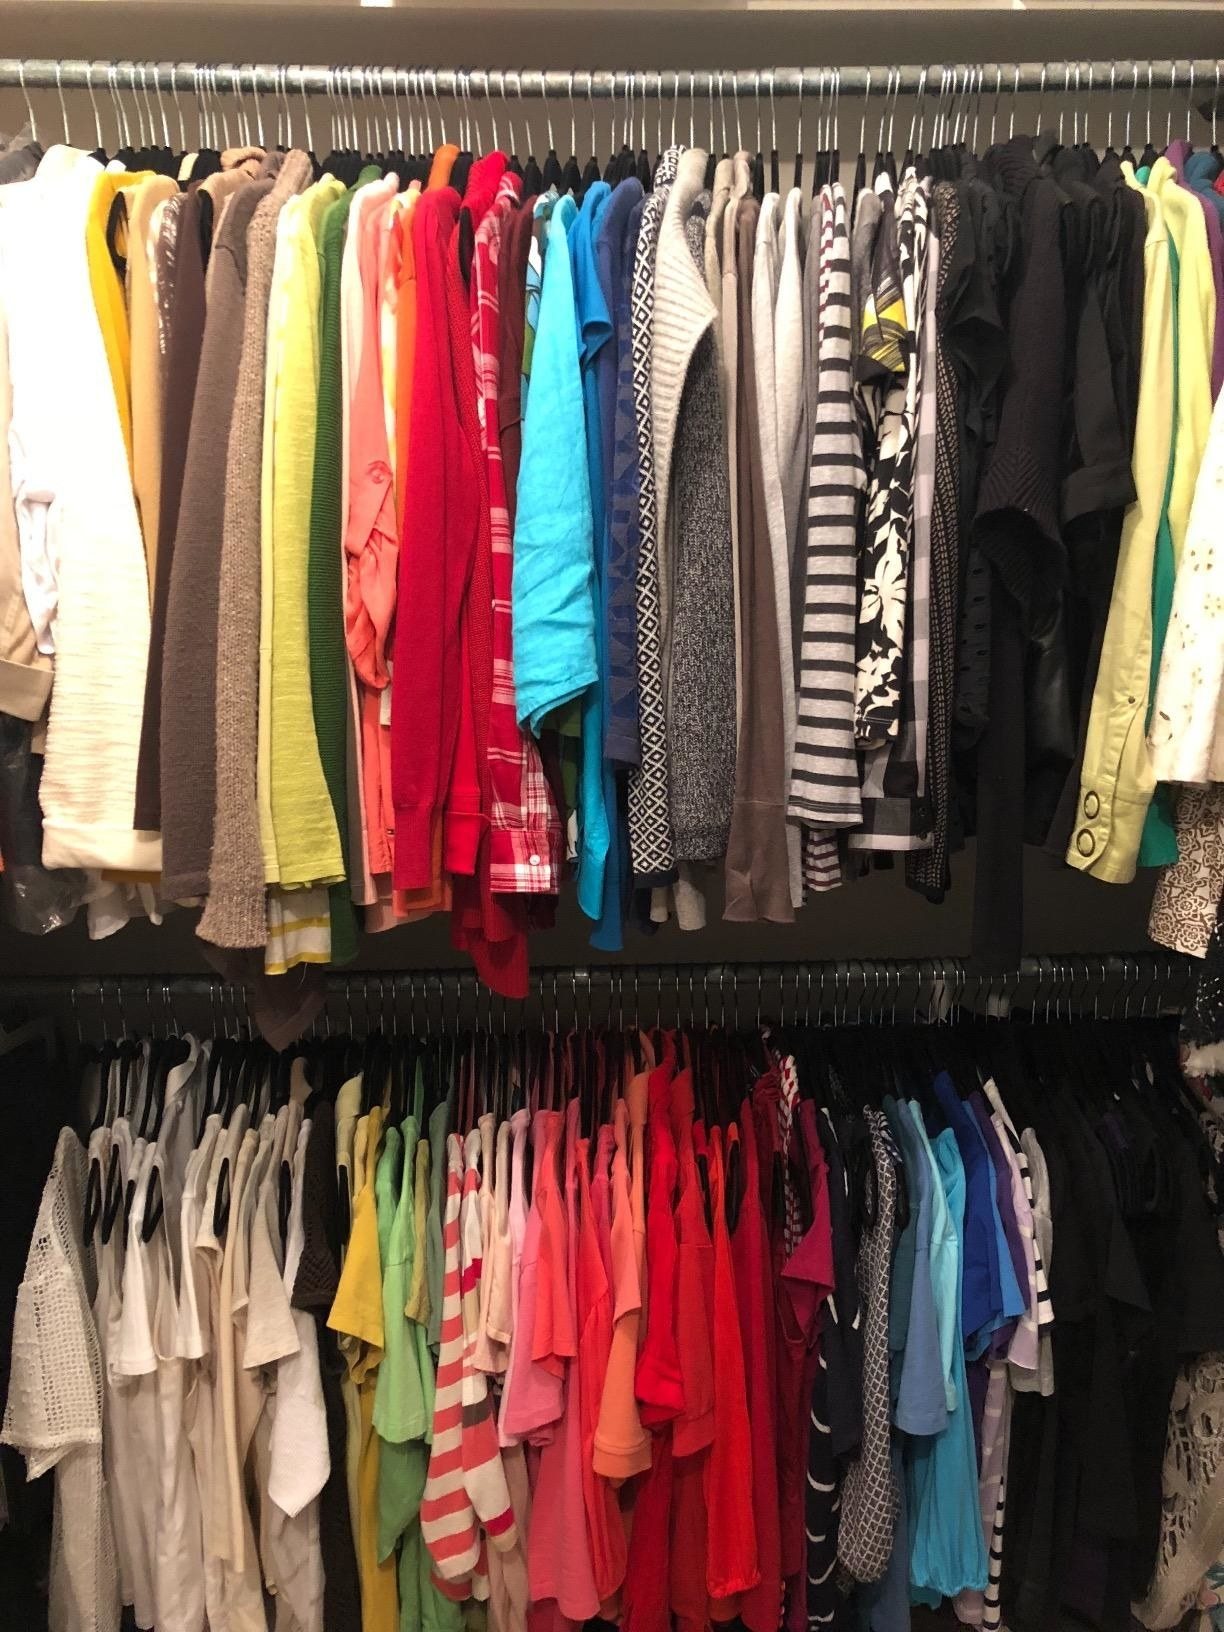 A reviewer's closet, with lots of clothes because of the slim hangers